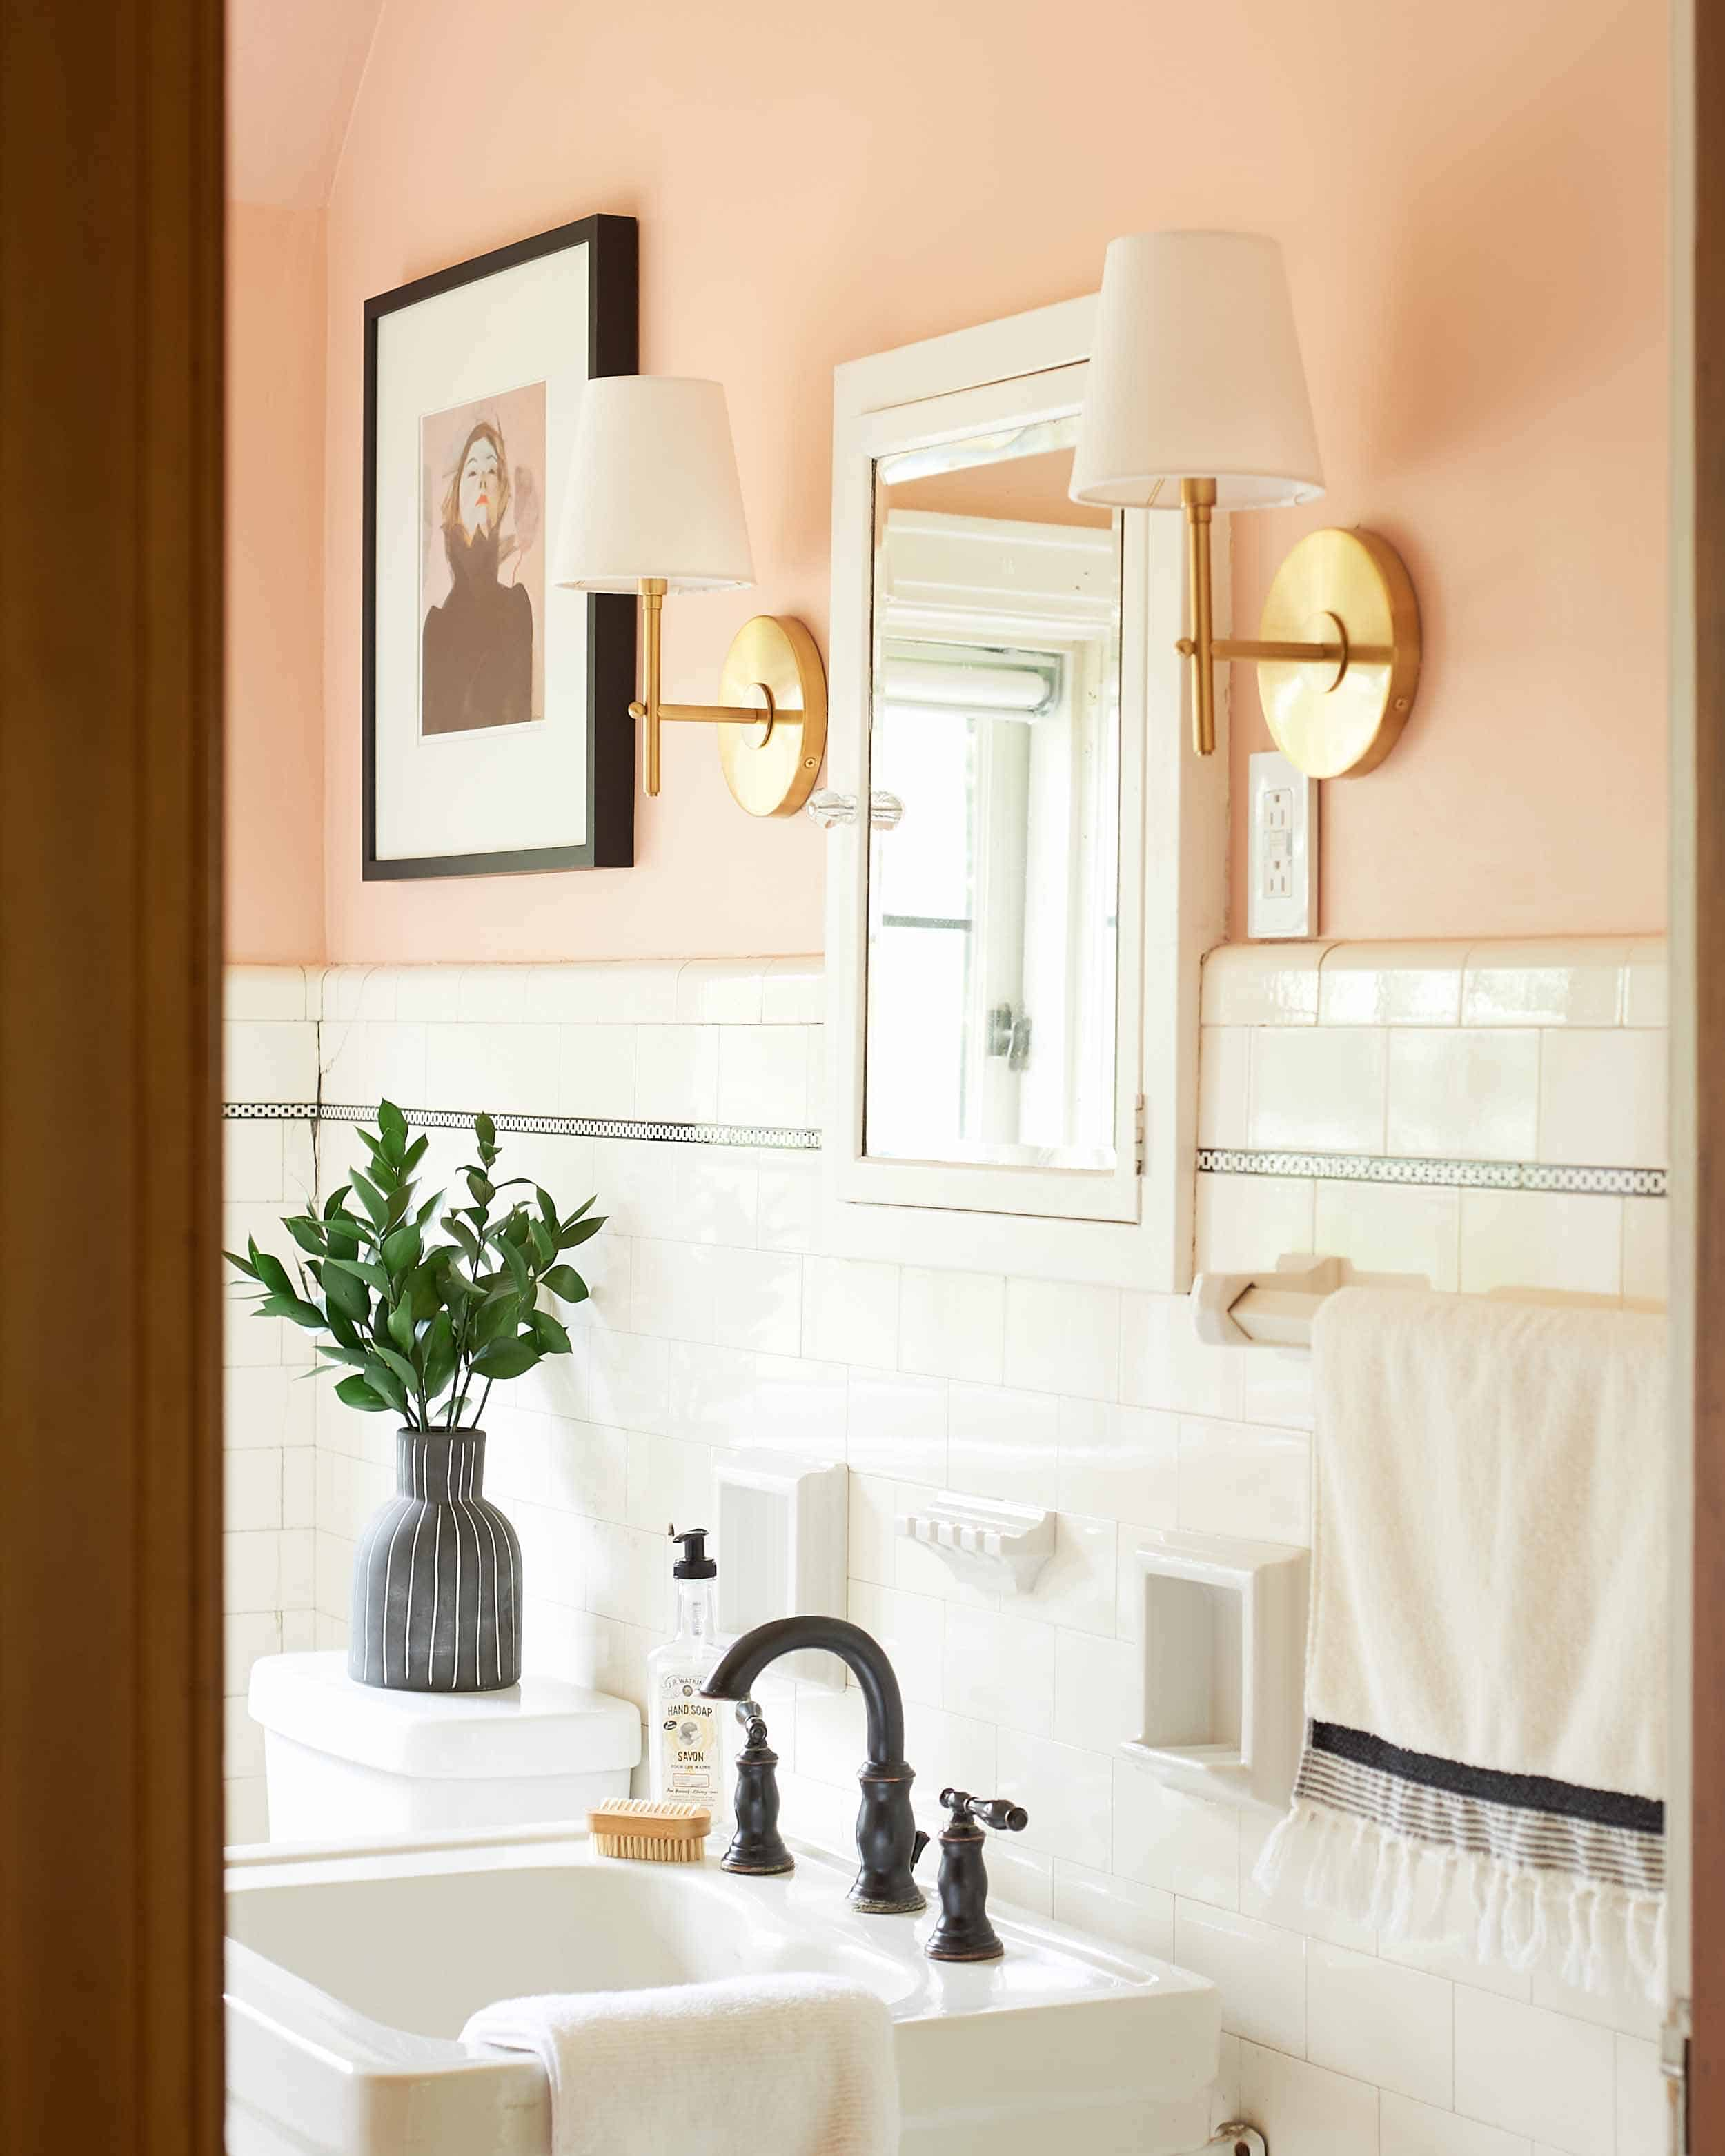 Ehd House Tour Emily Cosnotti Bathroom 002